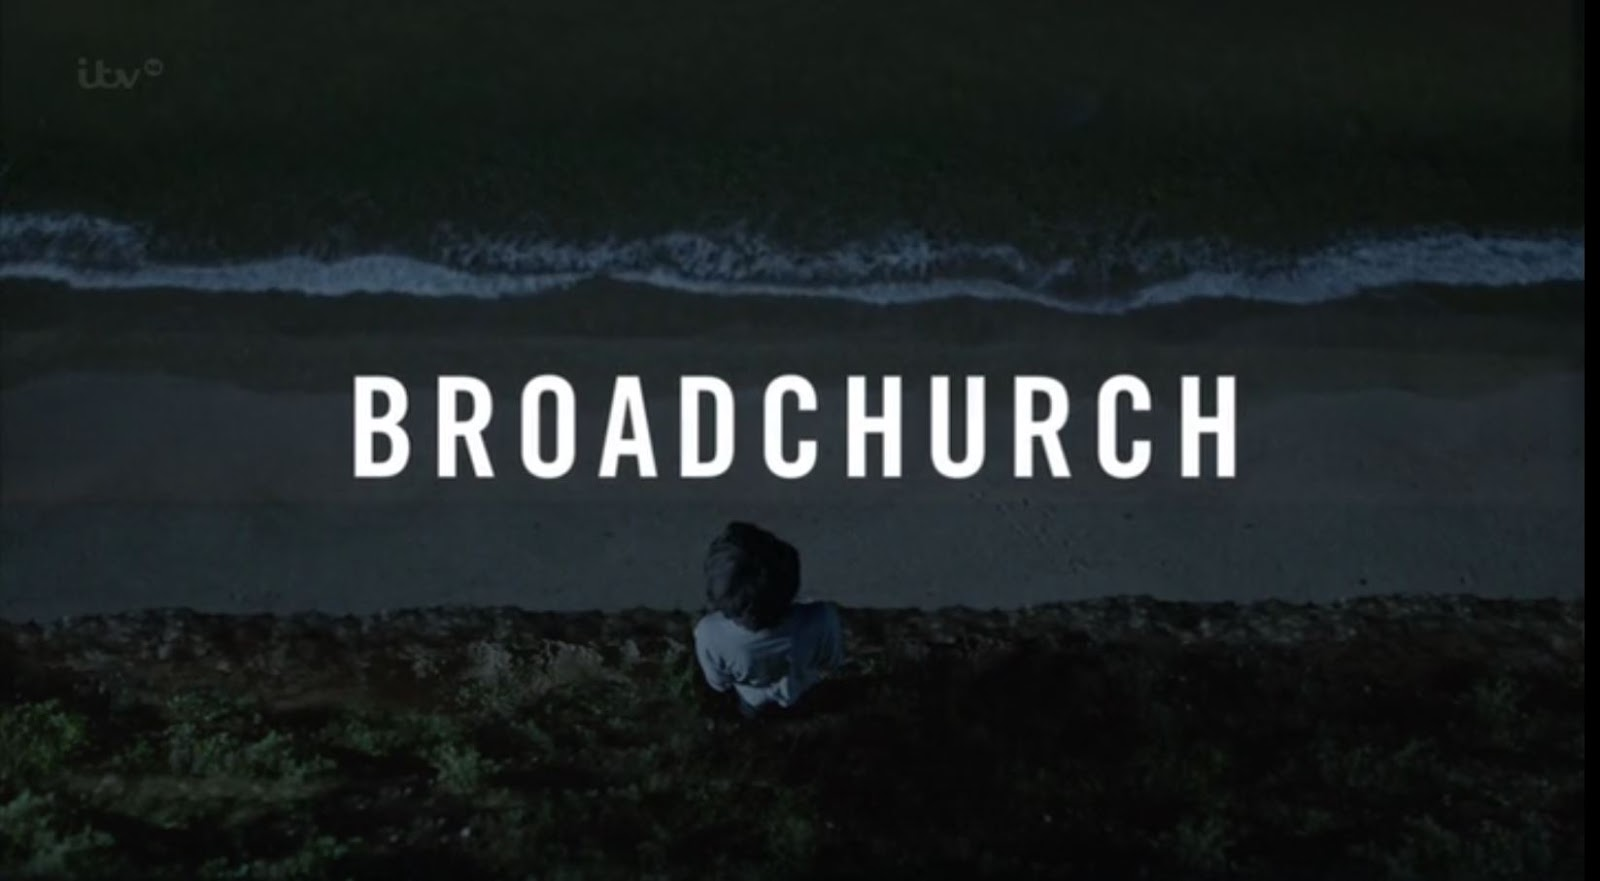 CST #268: Broadchurch - Not a House of Worship for Women